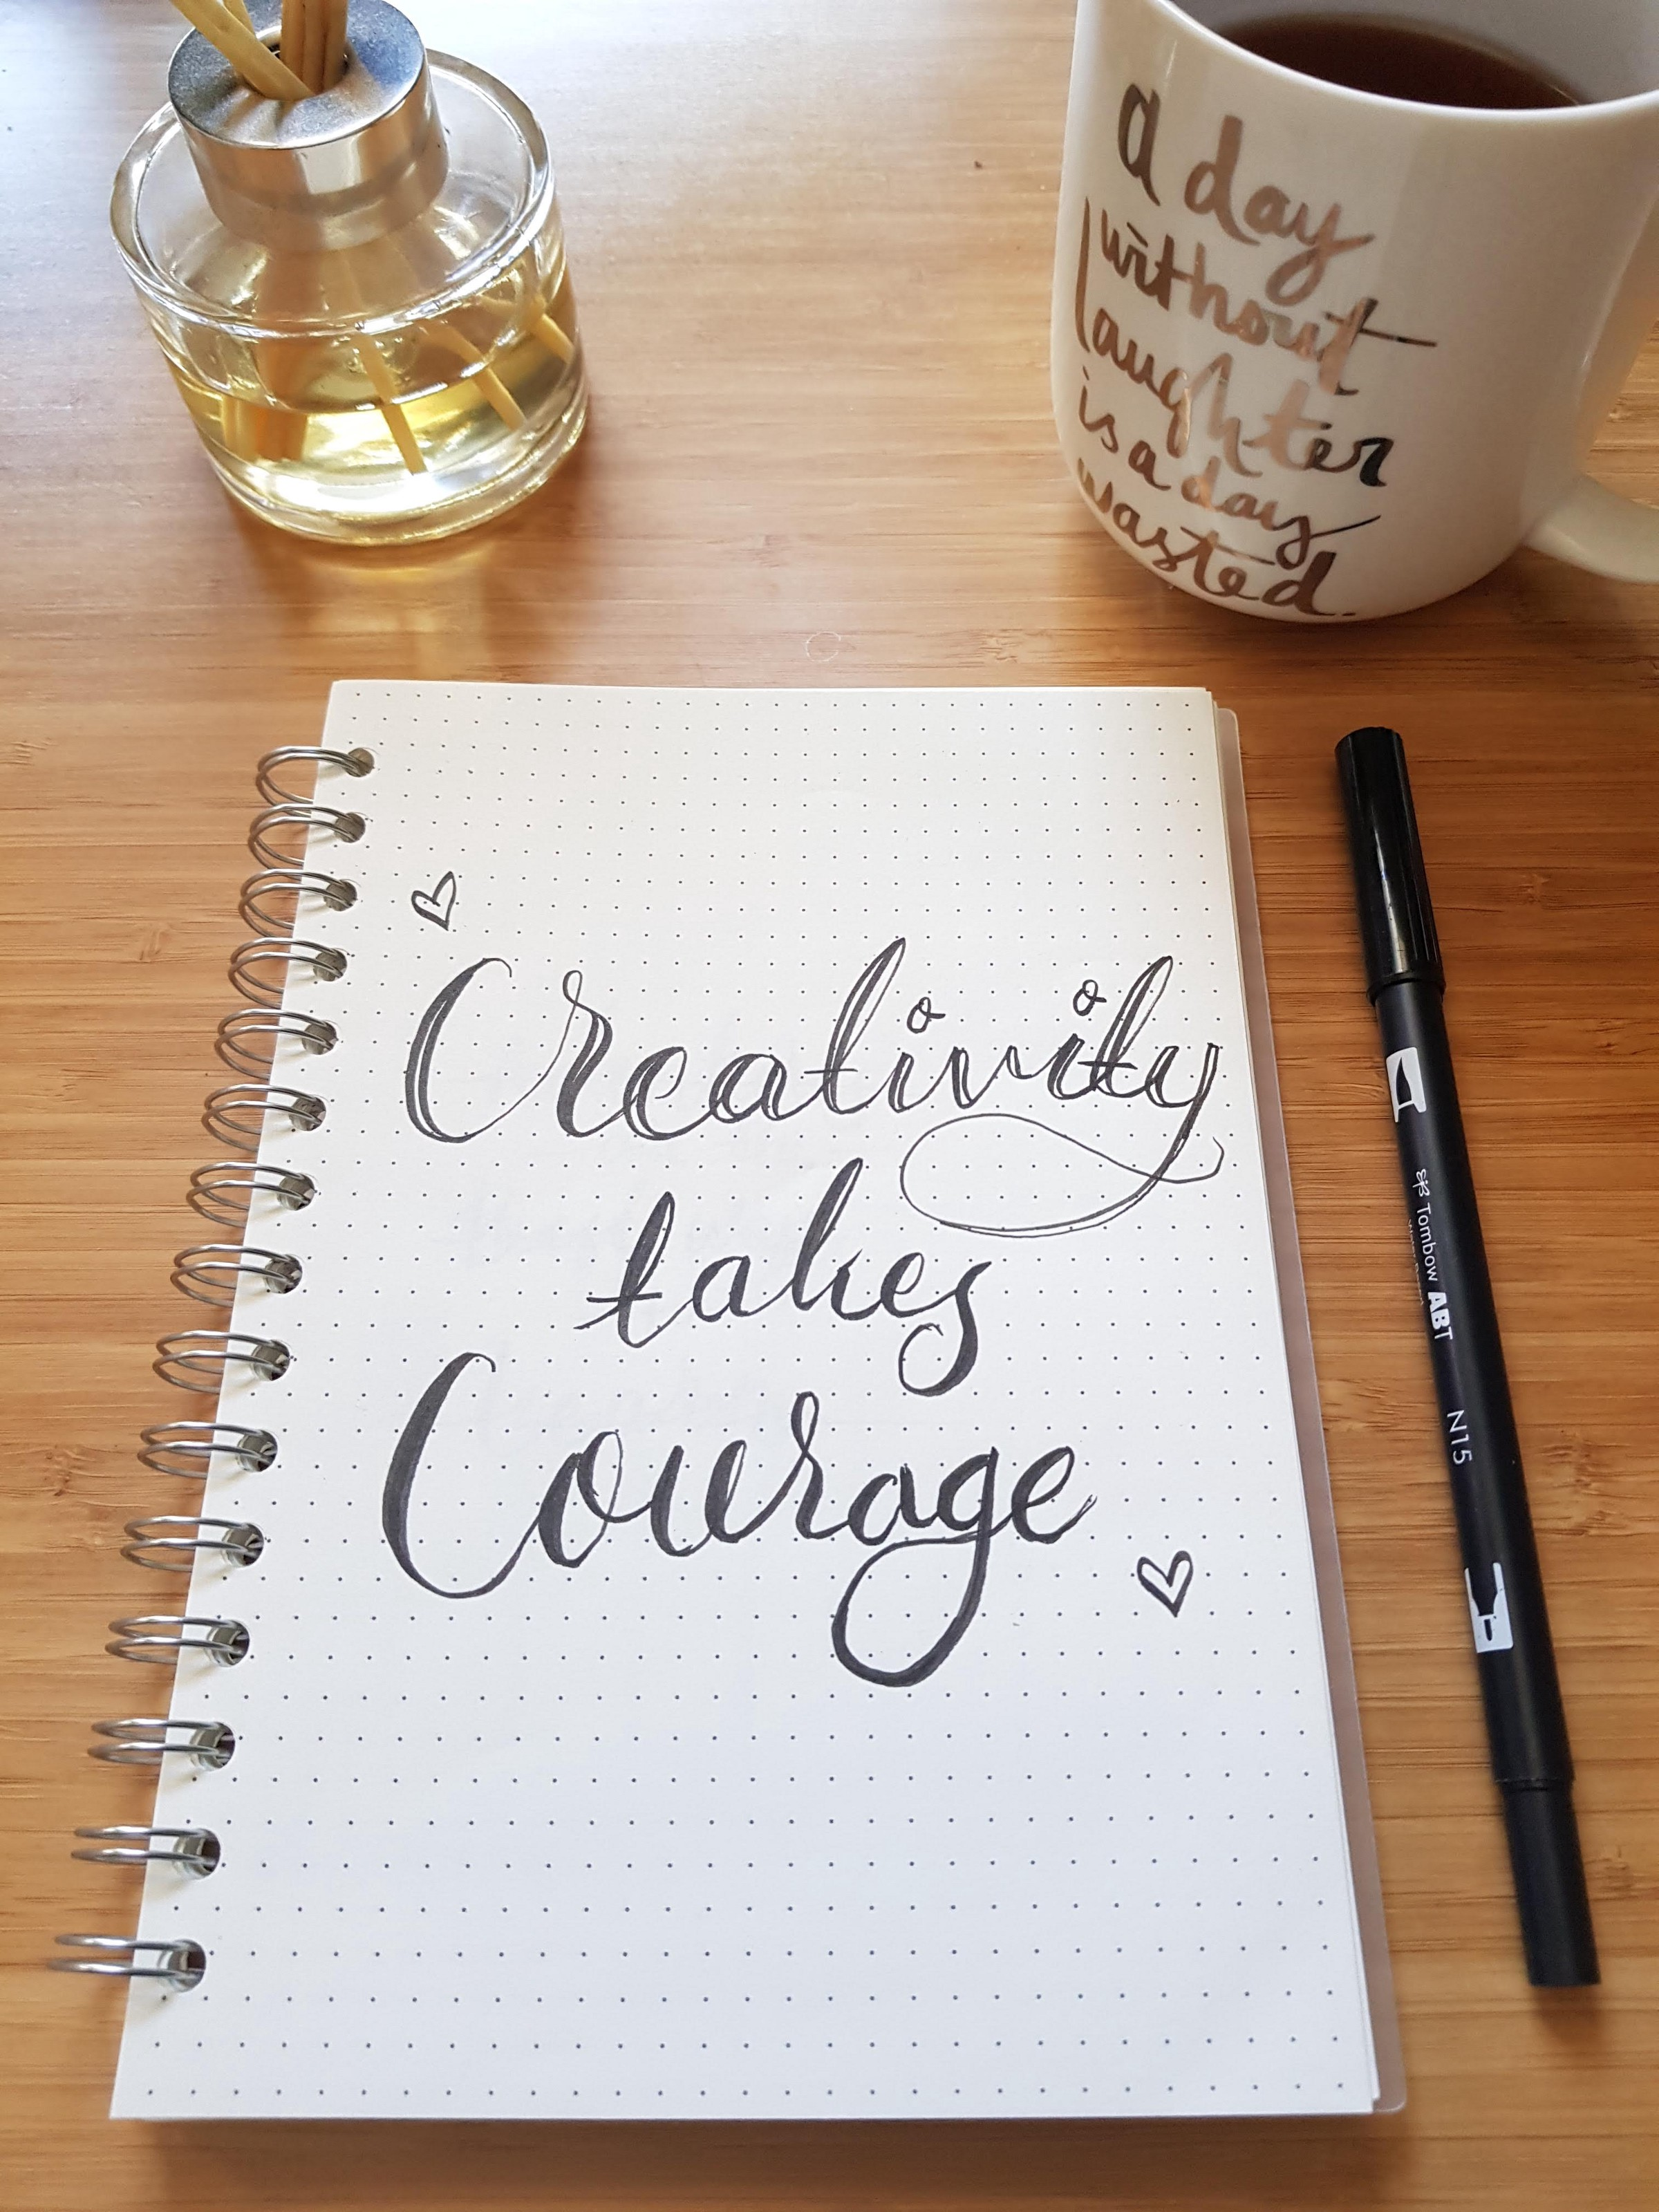 Creative Writing prompt, takes courage